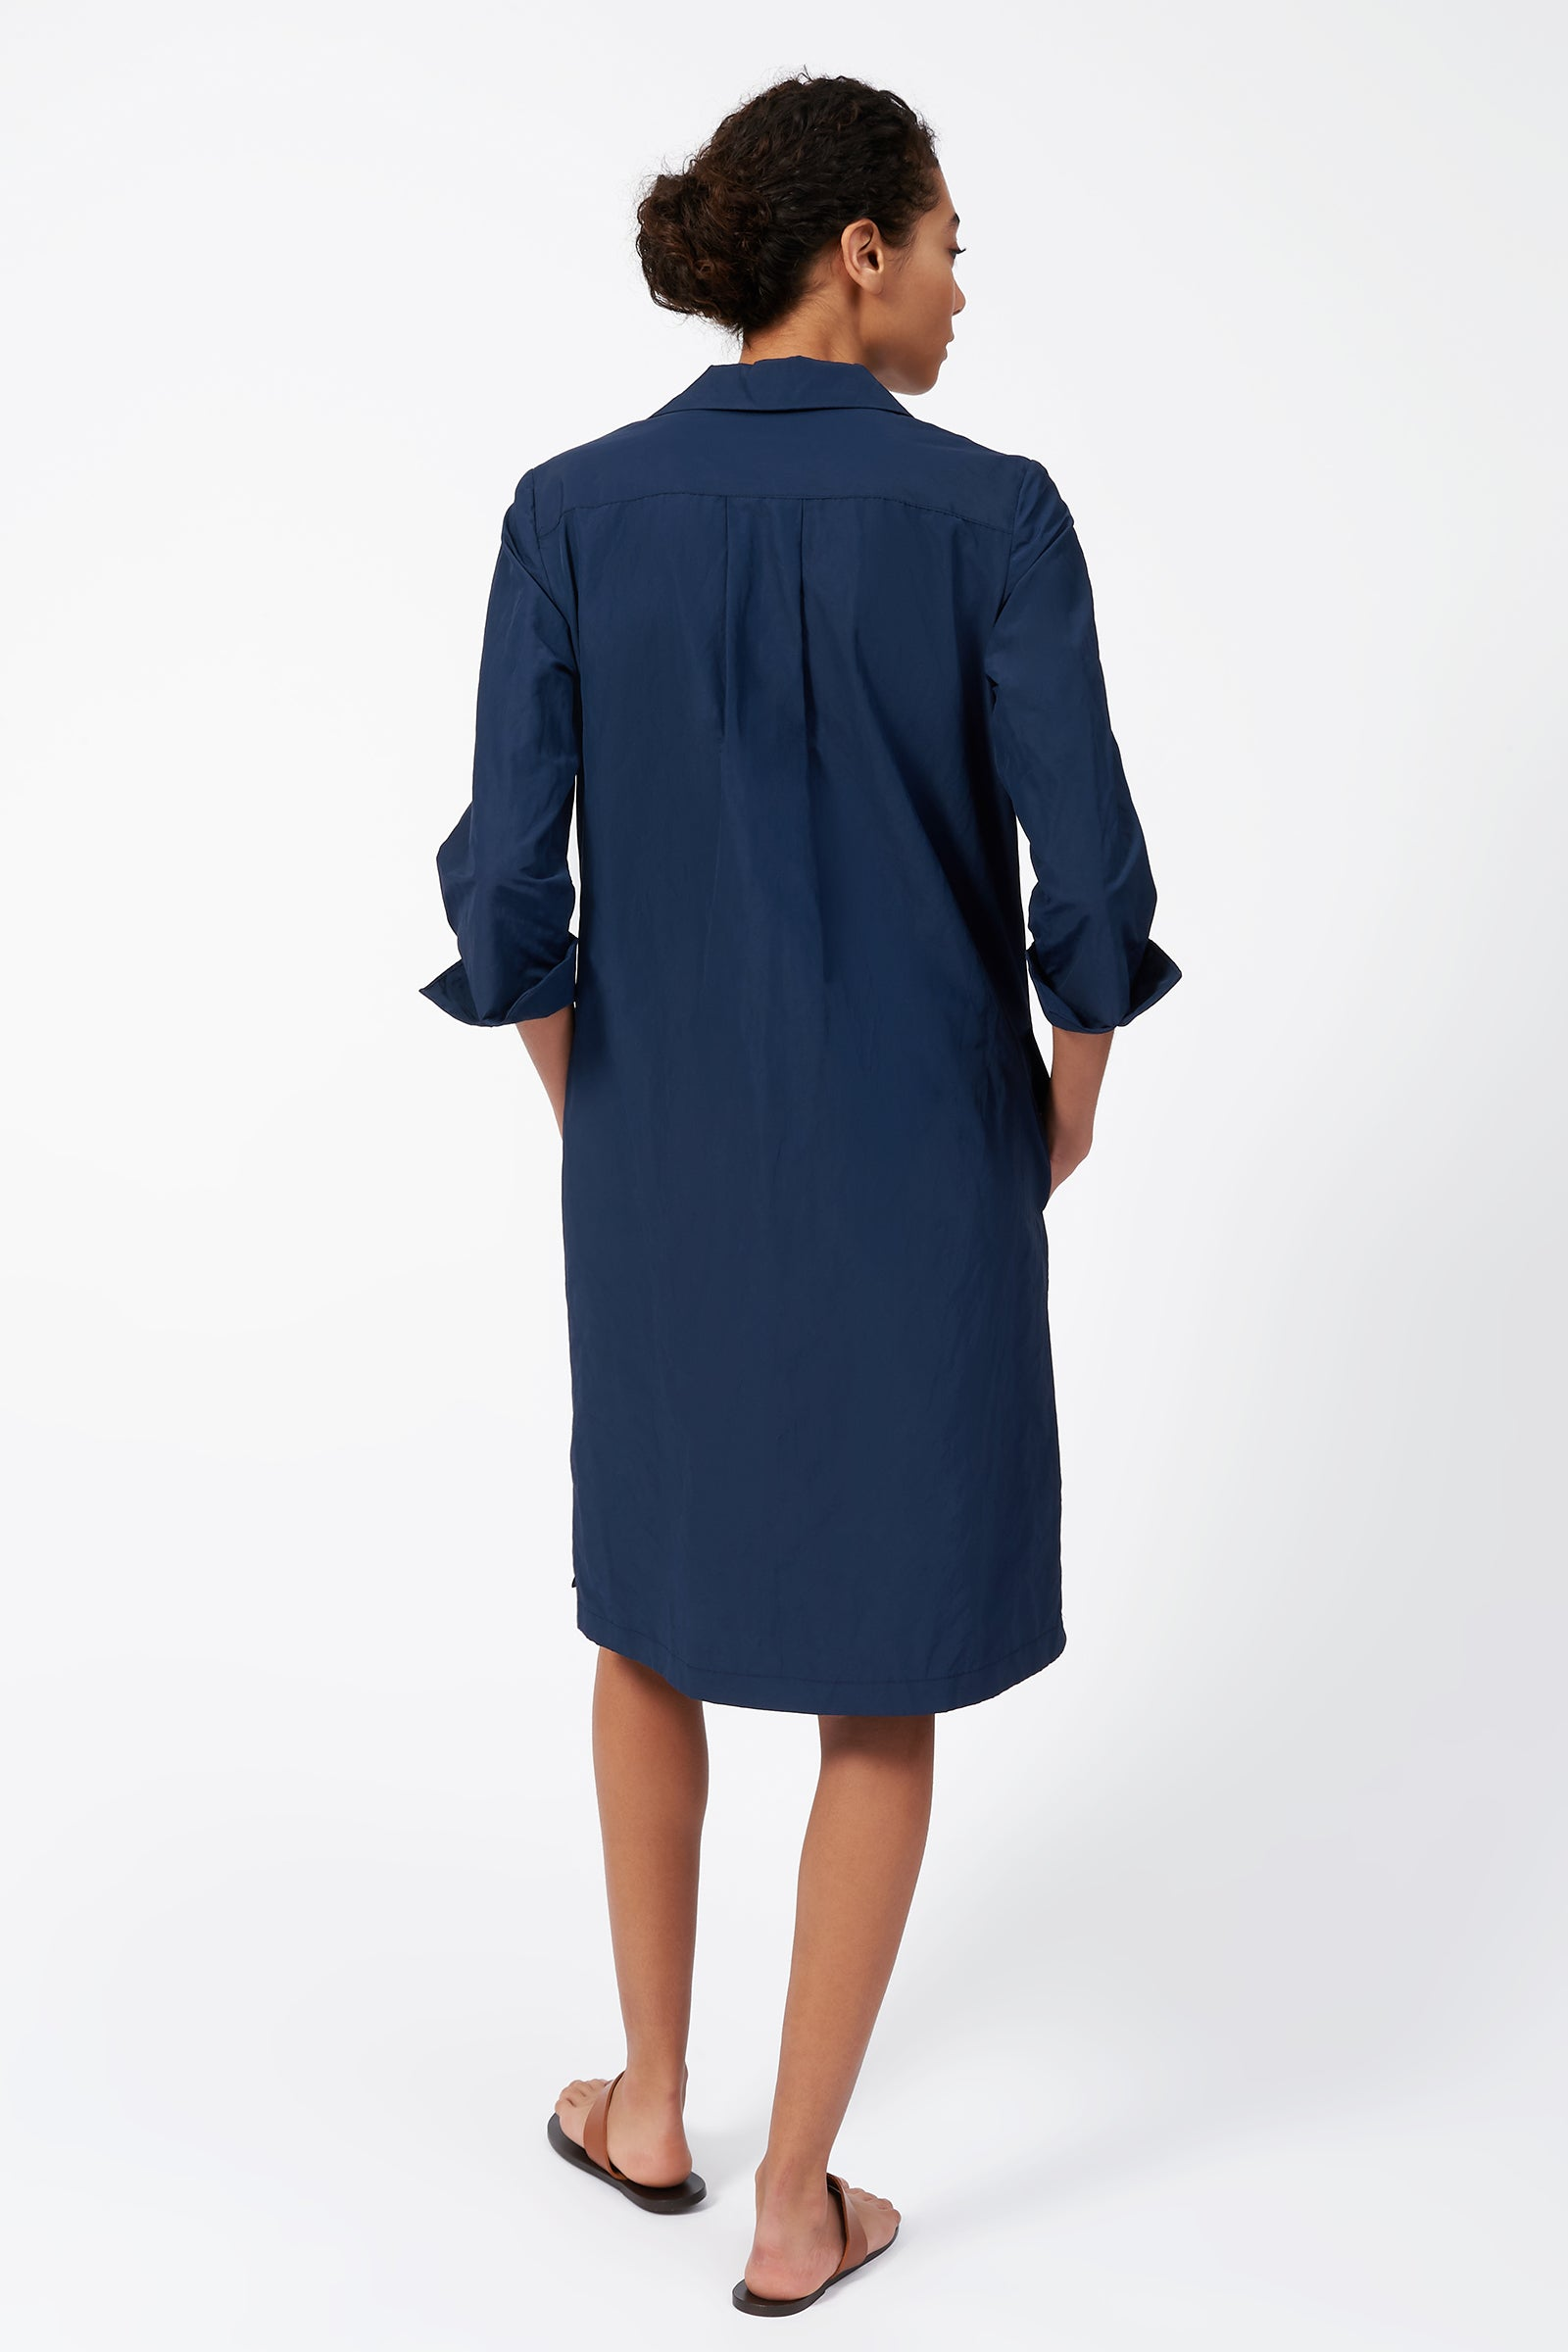 Kal Rieman Collared V Neck Dress in Navy on Model Full Back View